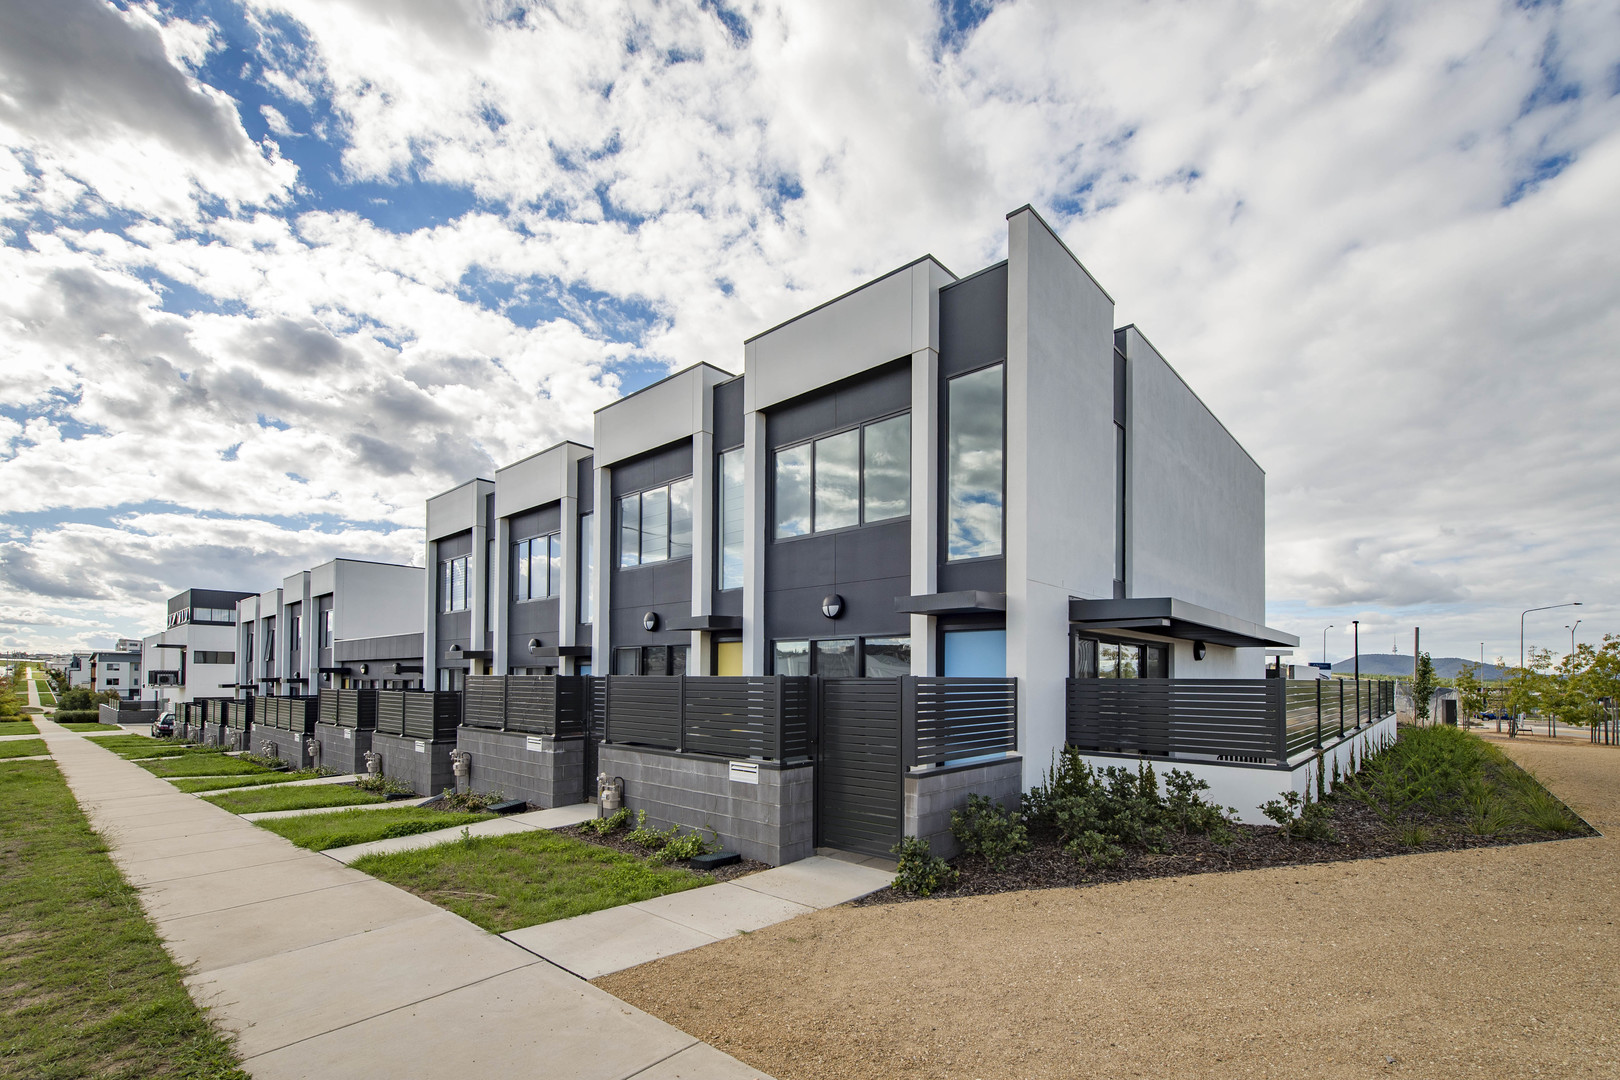 2/2 Max Jacobs Avenue, Wright